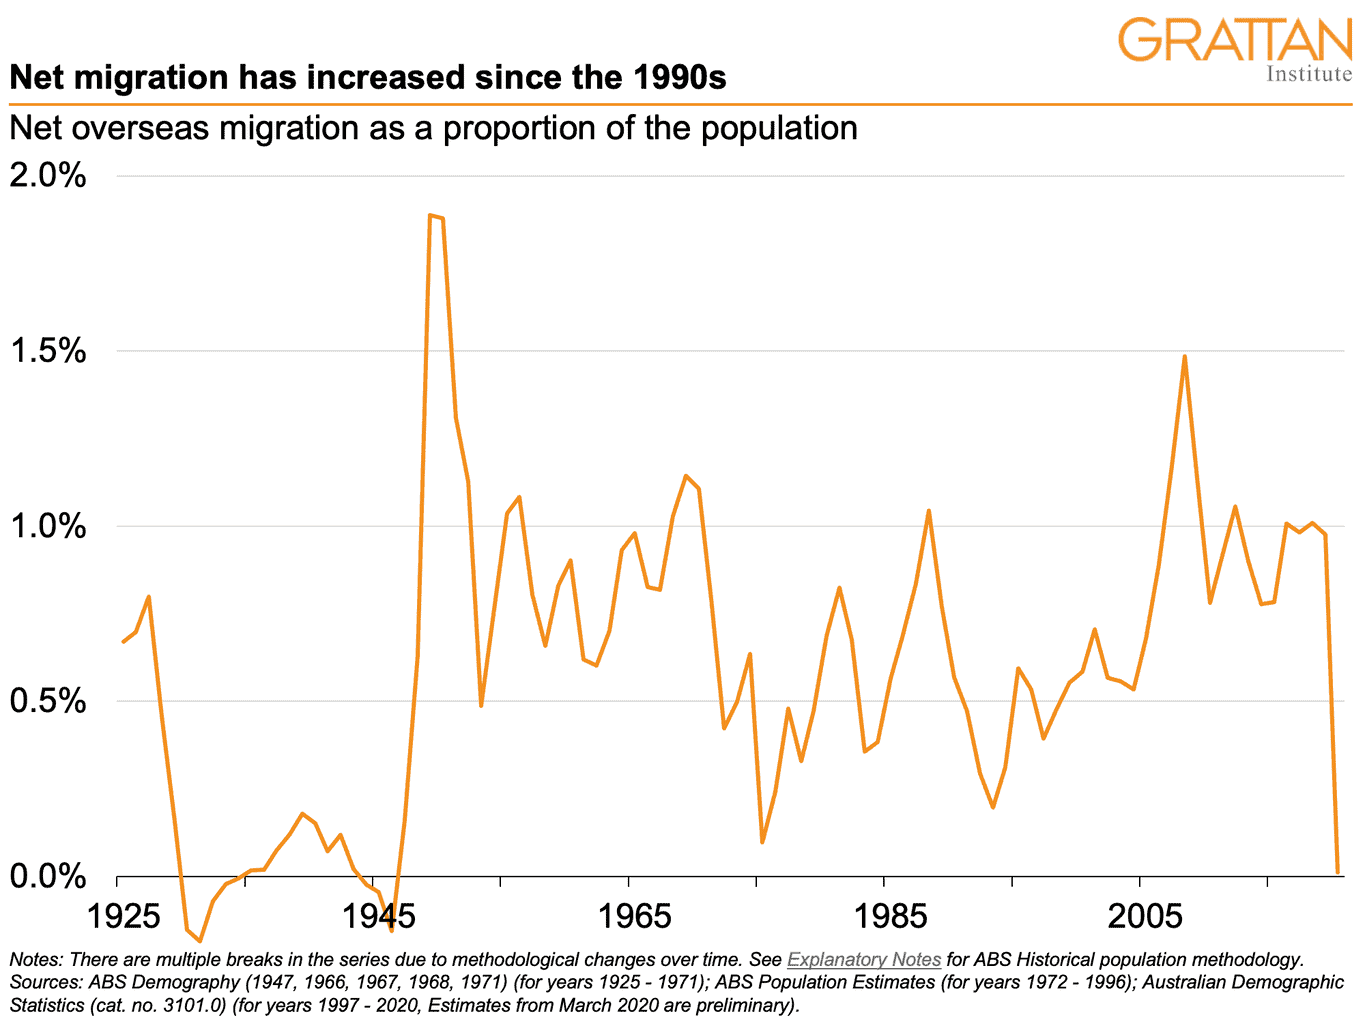 The chart shows the rate of net overseas migration to Australia from 1925 to 2020.